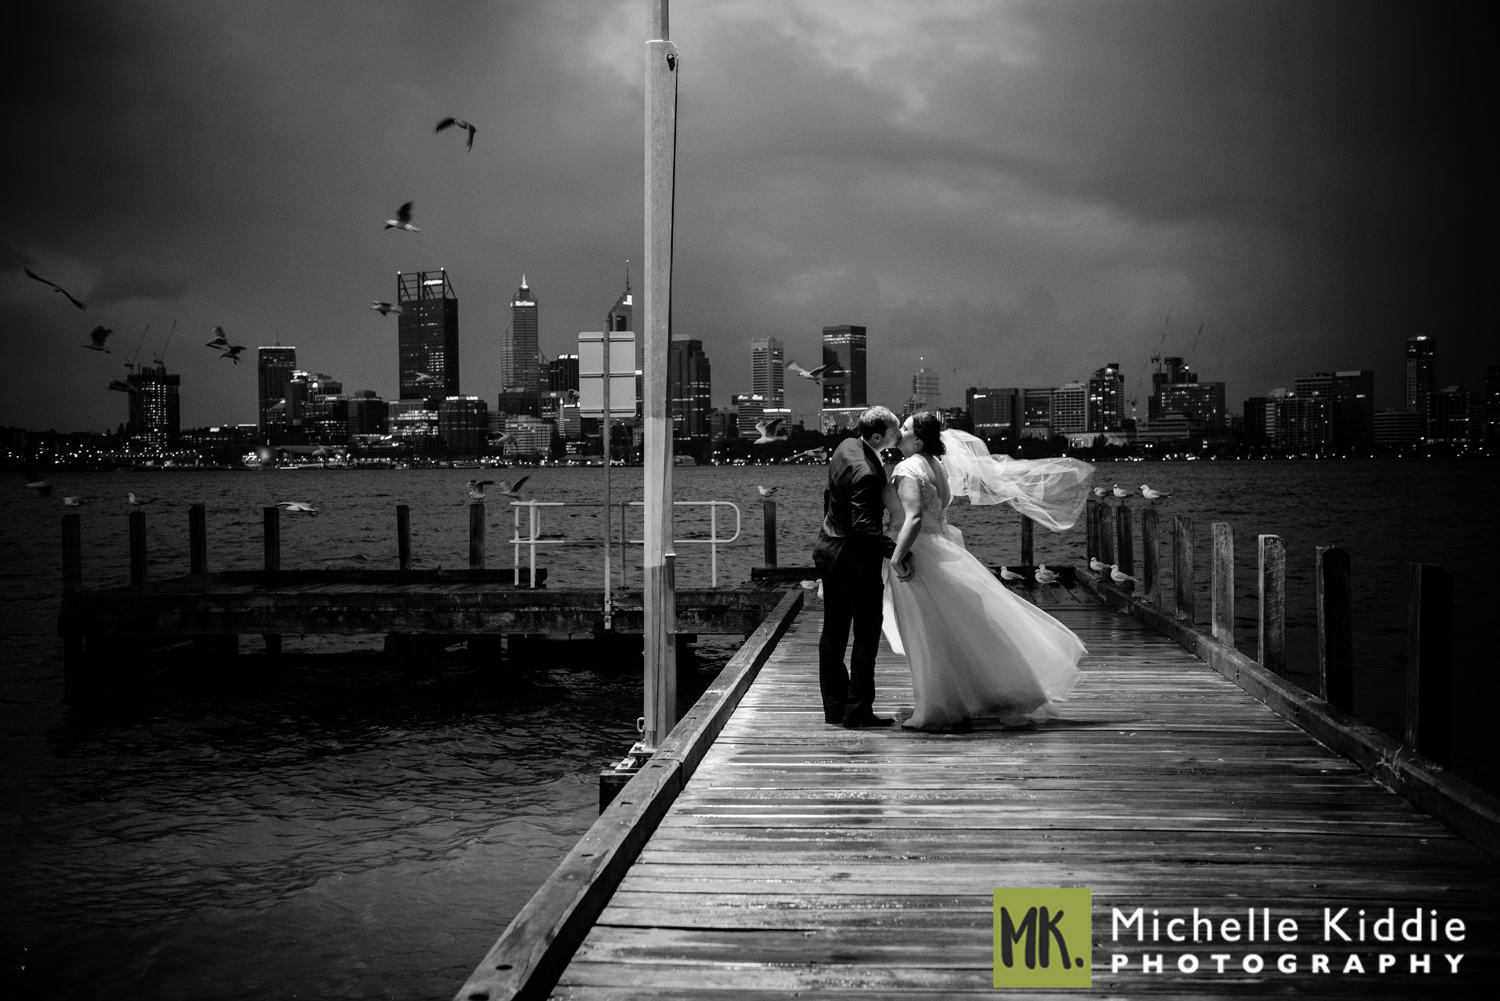 The Boatshed - The Boatshed boasts some of the best views of the river and city, with golden hues at sunset giving way to the twinkling lights of the city reflecting on the water as darkness descends. Ceremonies can be held adjacent to the Boatshed on the grass lawn for ease and convenience. Click here to view some Boatshed Weddings: Hannah and Kieran;  Kate and Matt; Shannon and Kenrick;